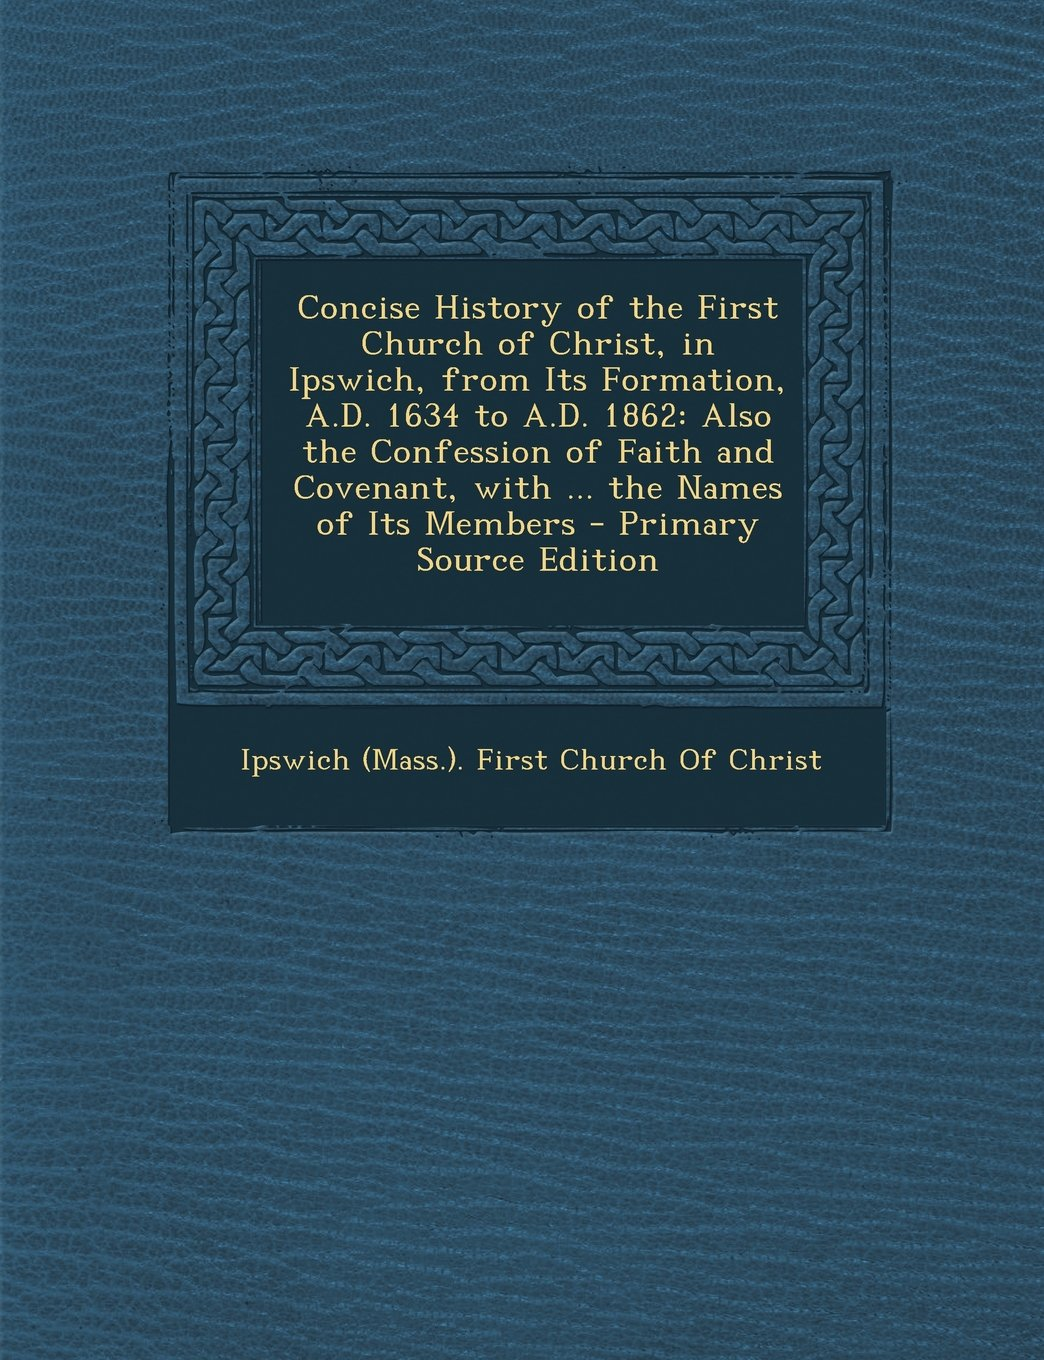 Download Concise History of the First Church of Christ, in Ipswich, from Its Formation, A.D. 1634 to A.D. 1862: Also the Confession of Faith and Covenant, with pdf